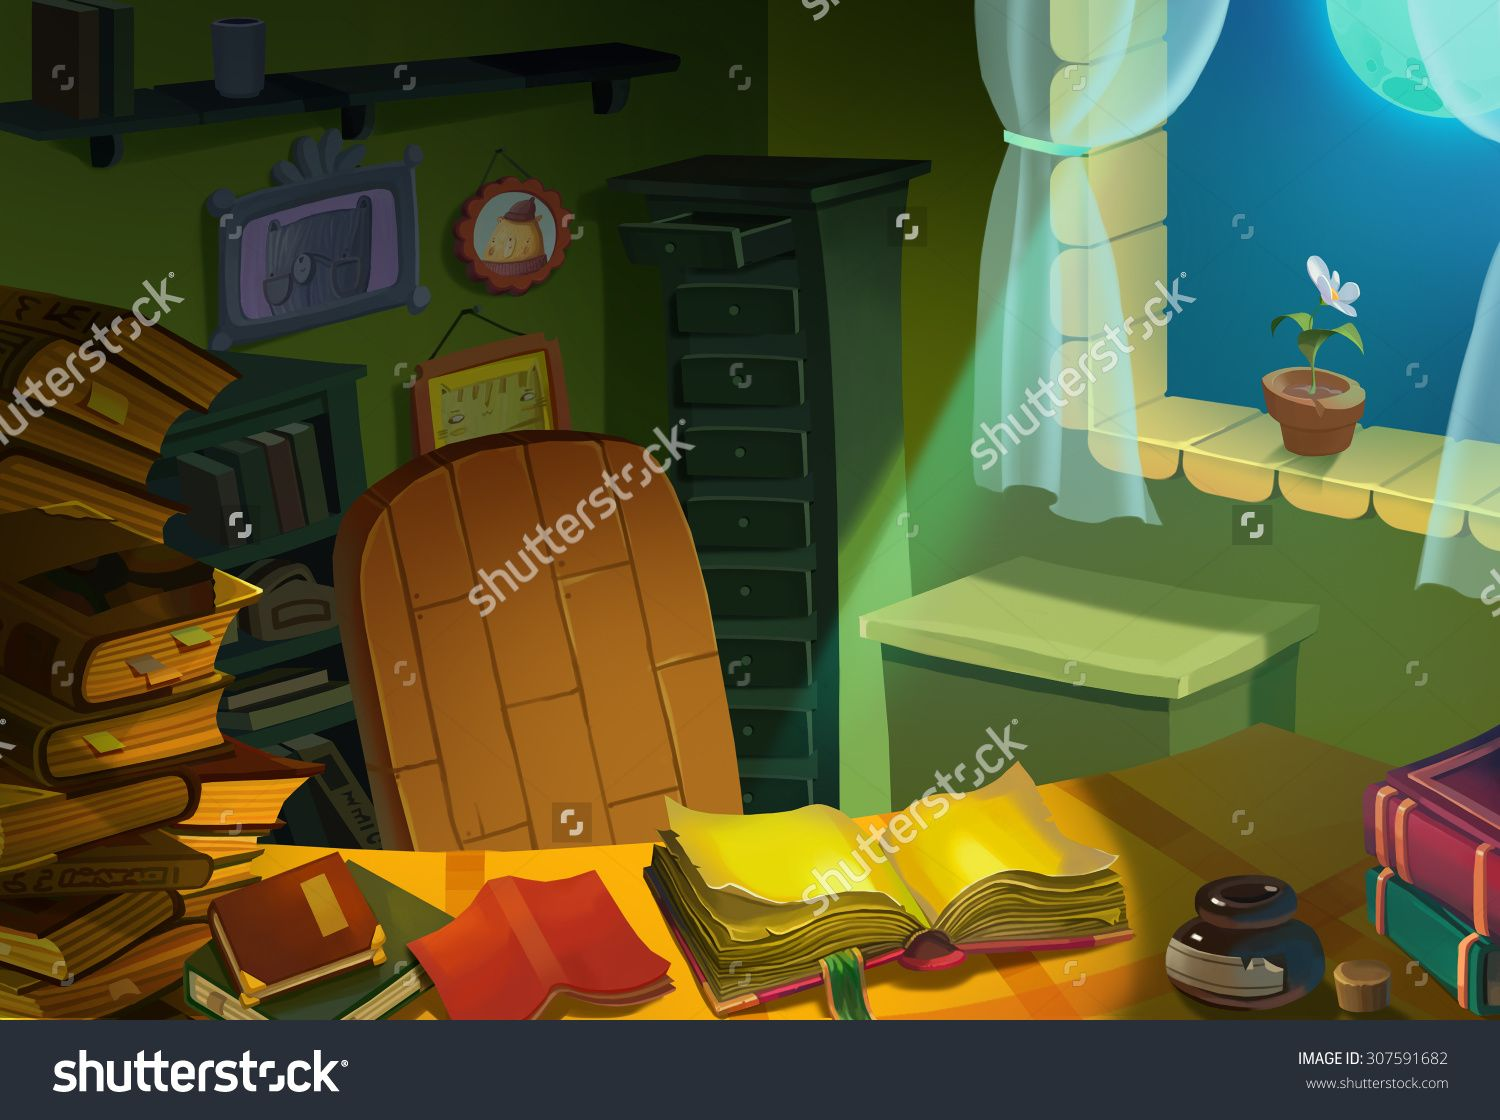 Cartoon dog stock photos images amp pictures shutterstock - Illustration Library Room At Night Realistic Cartoon Style Fantasy Scene Wallpaper